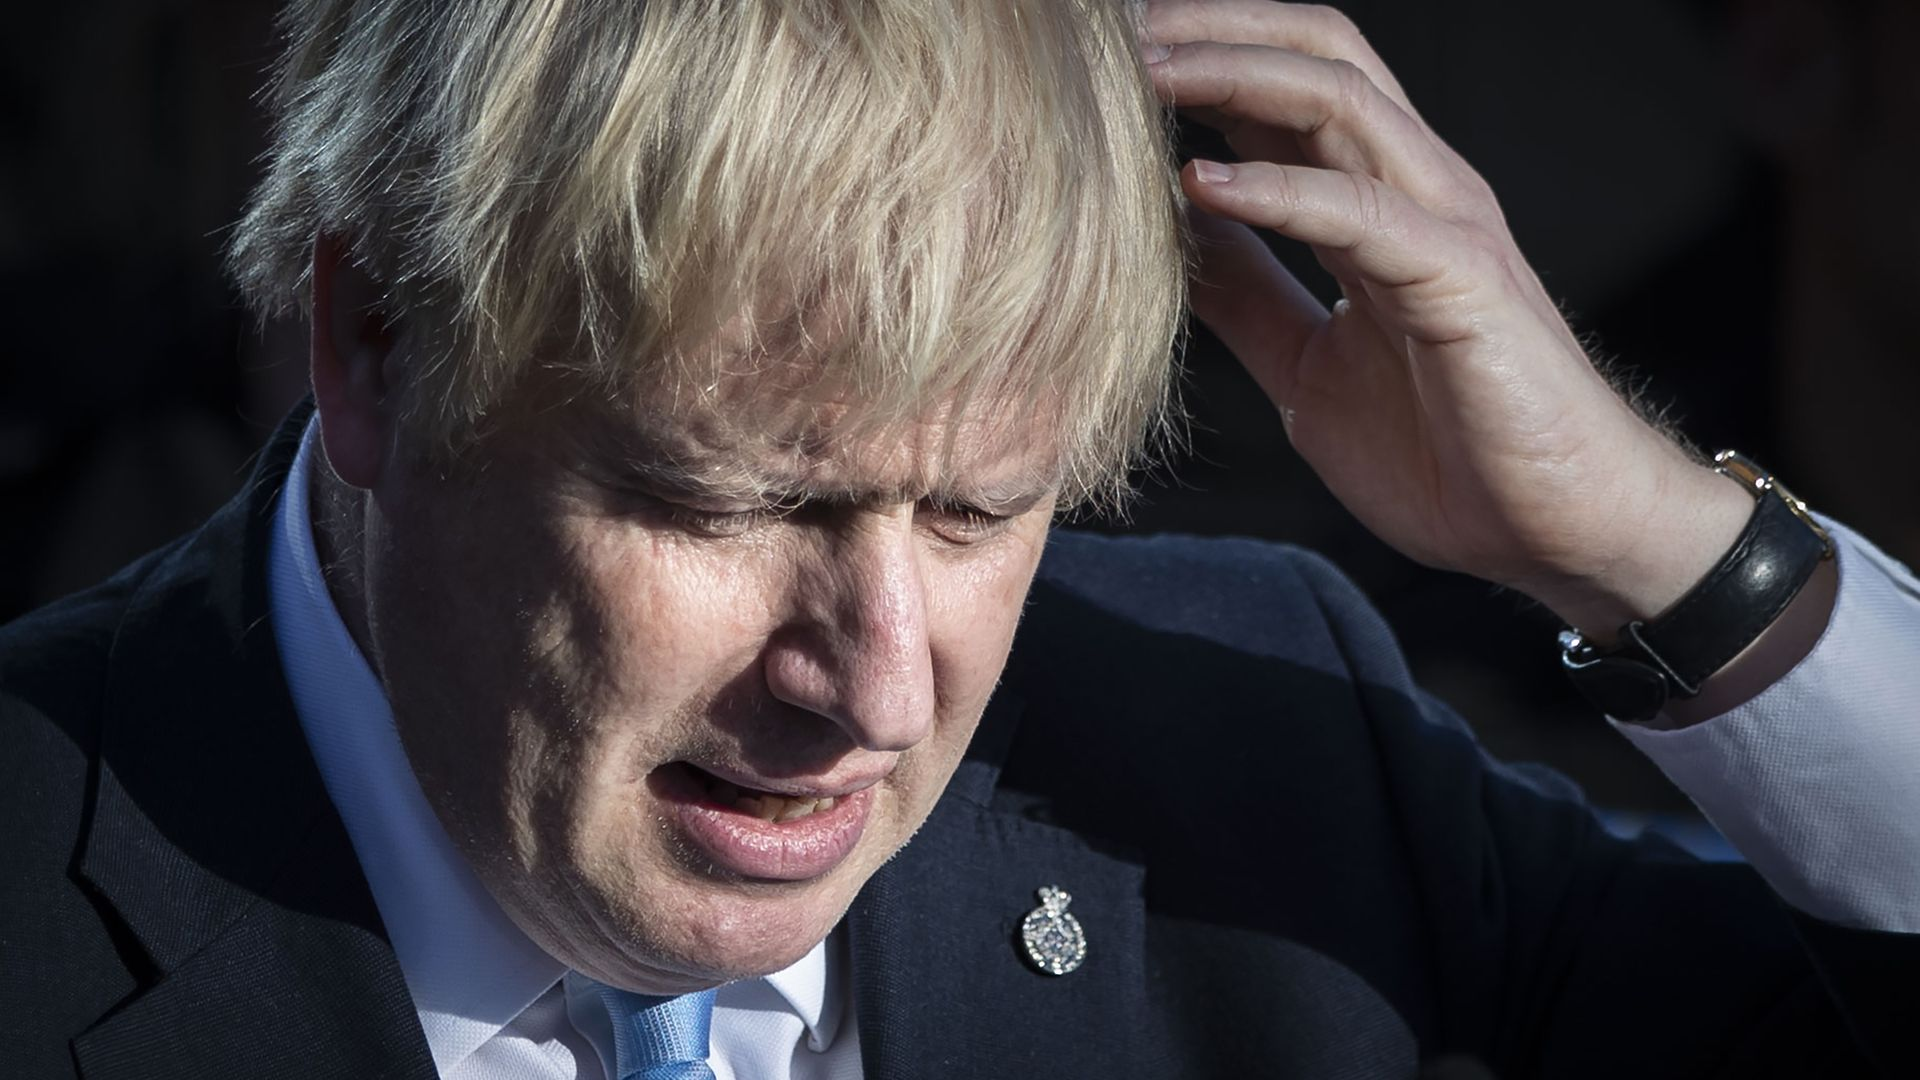 Prime minister Boris Johnson making a speech during a visit to West Yorkshire - Credit: PA